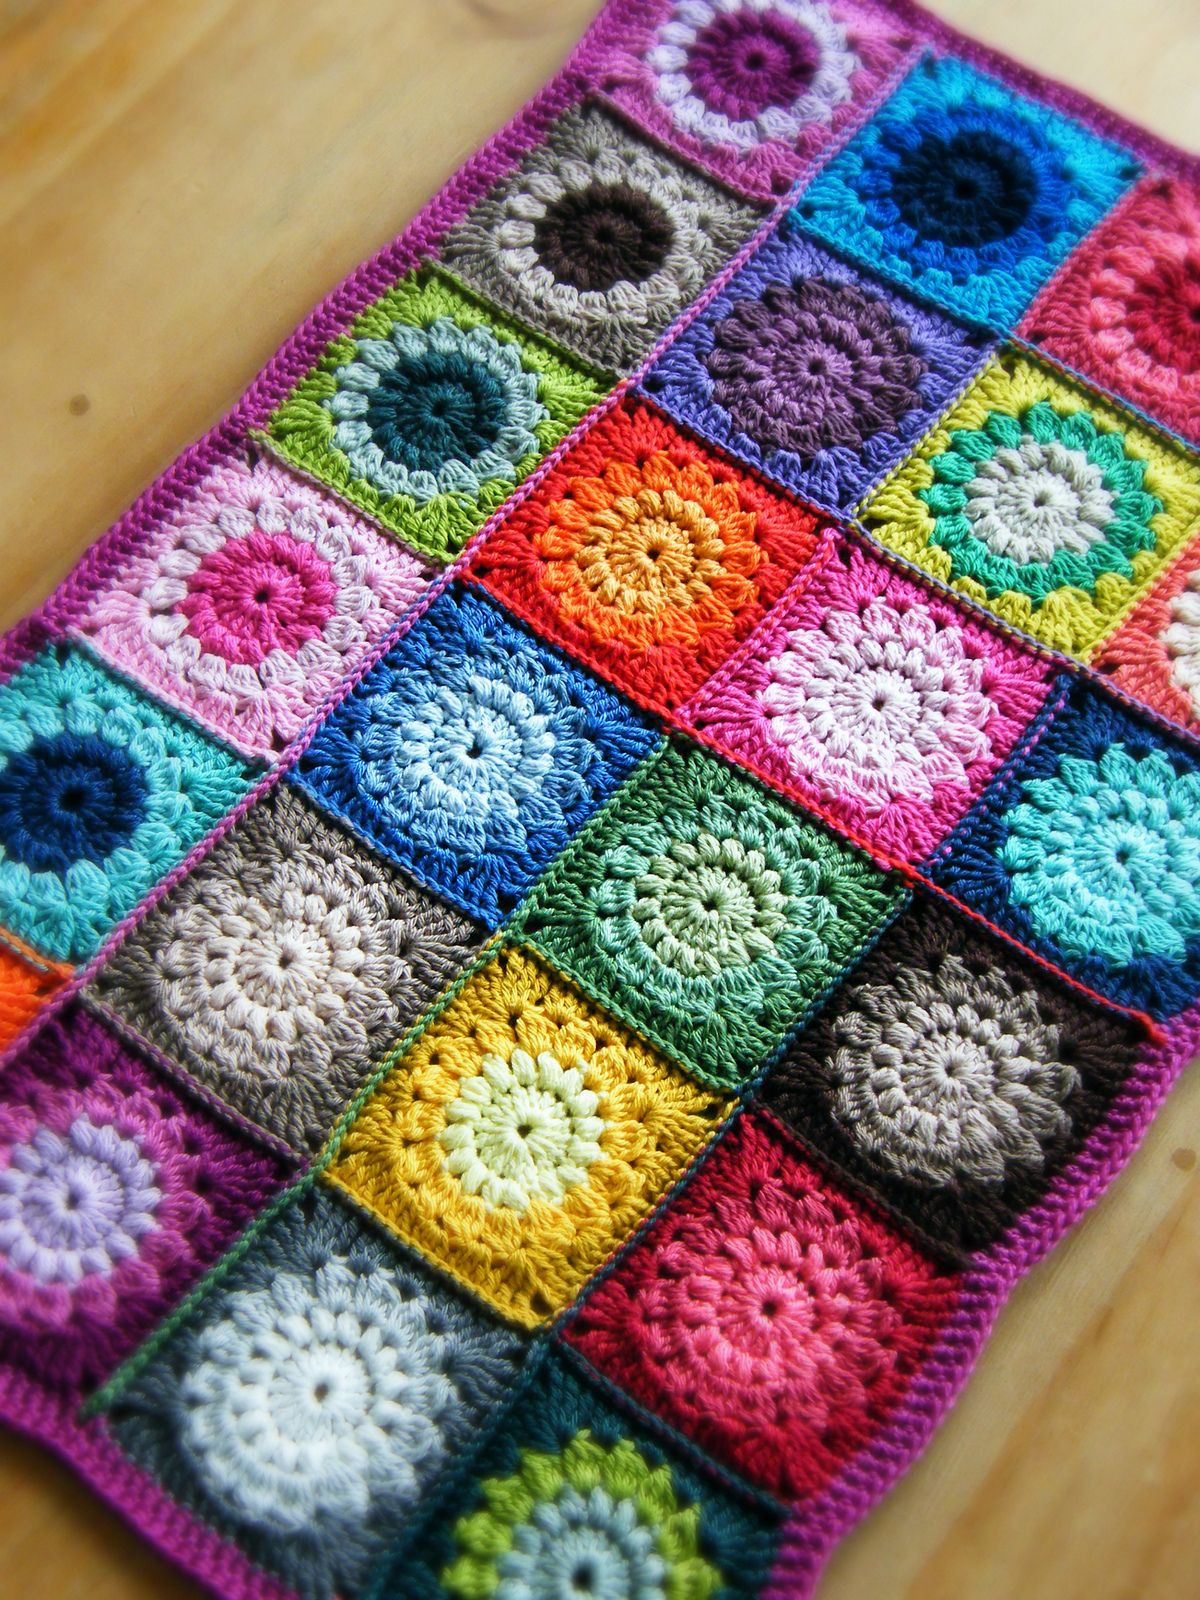 Crochet Granny Square Blanket Patterns Free Lovely Sunburst Granny Squares Pattern by Priscilla Hewitt Of Amazing 42 Ideas Crochet Granny Square Blanket Patterns Free